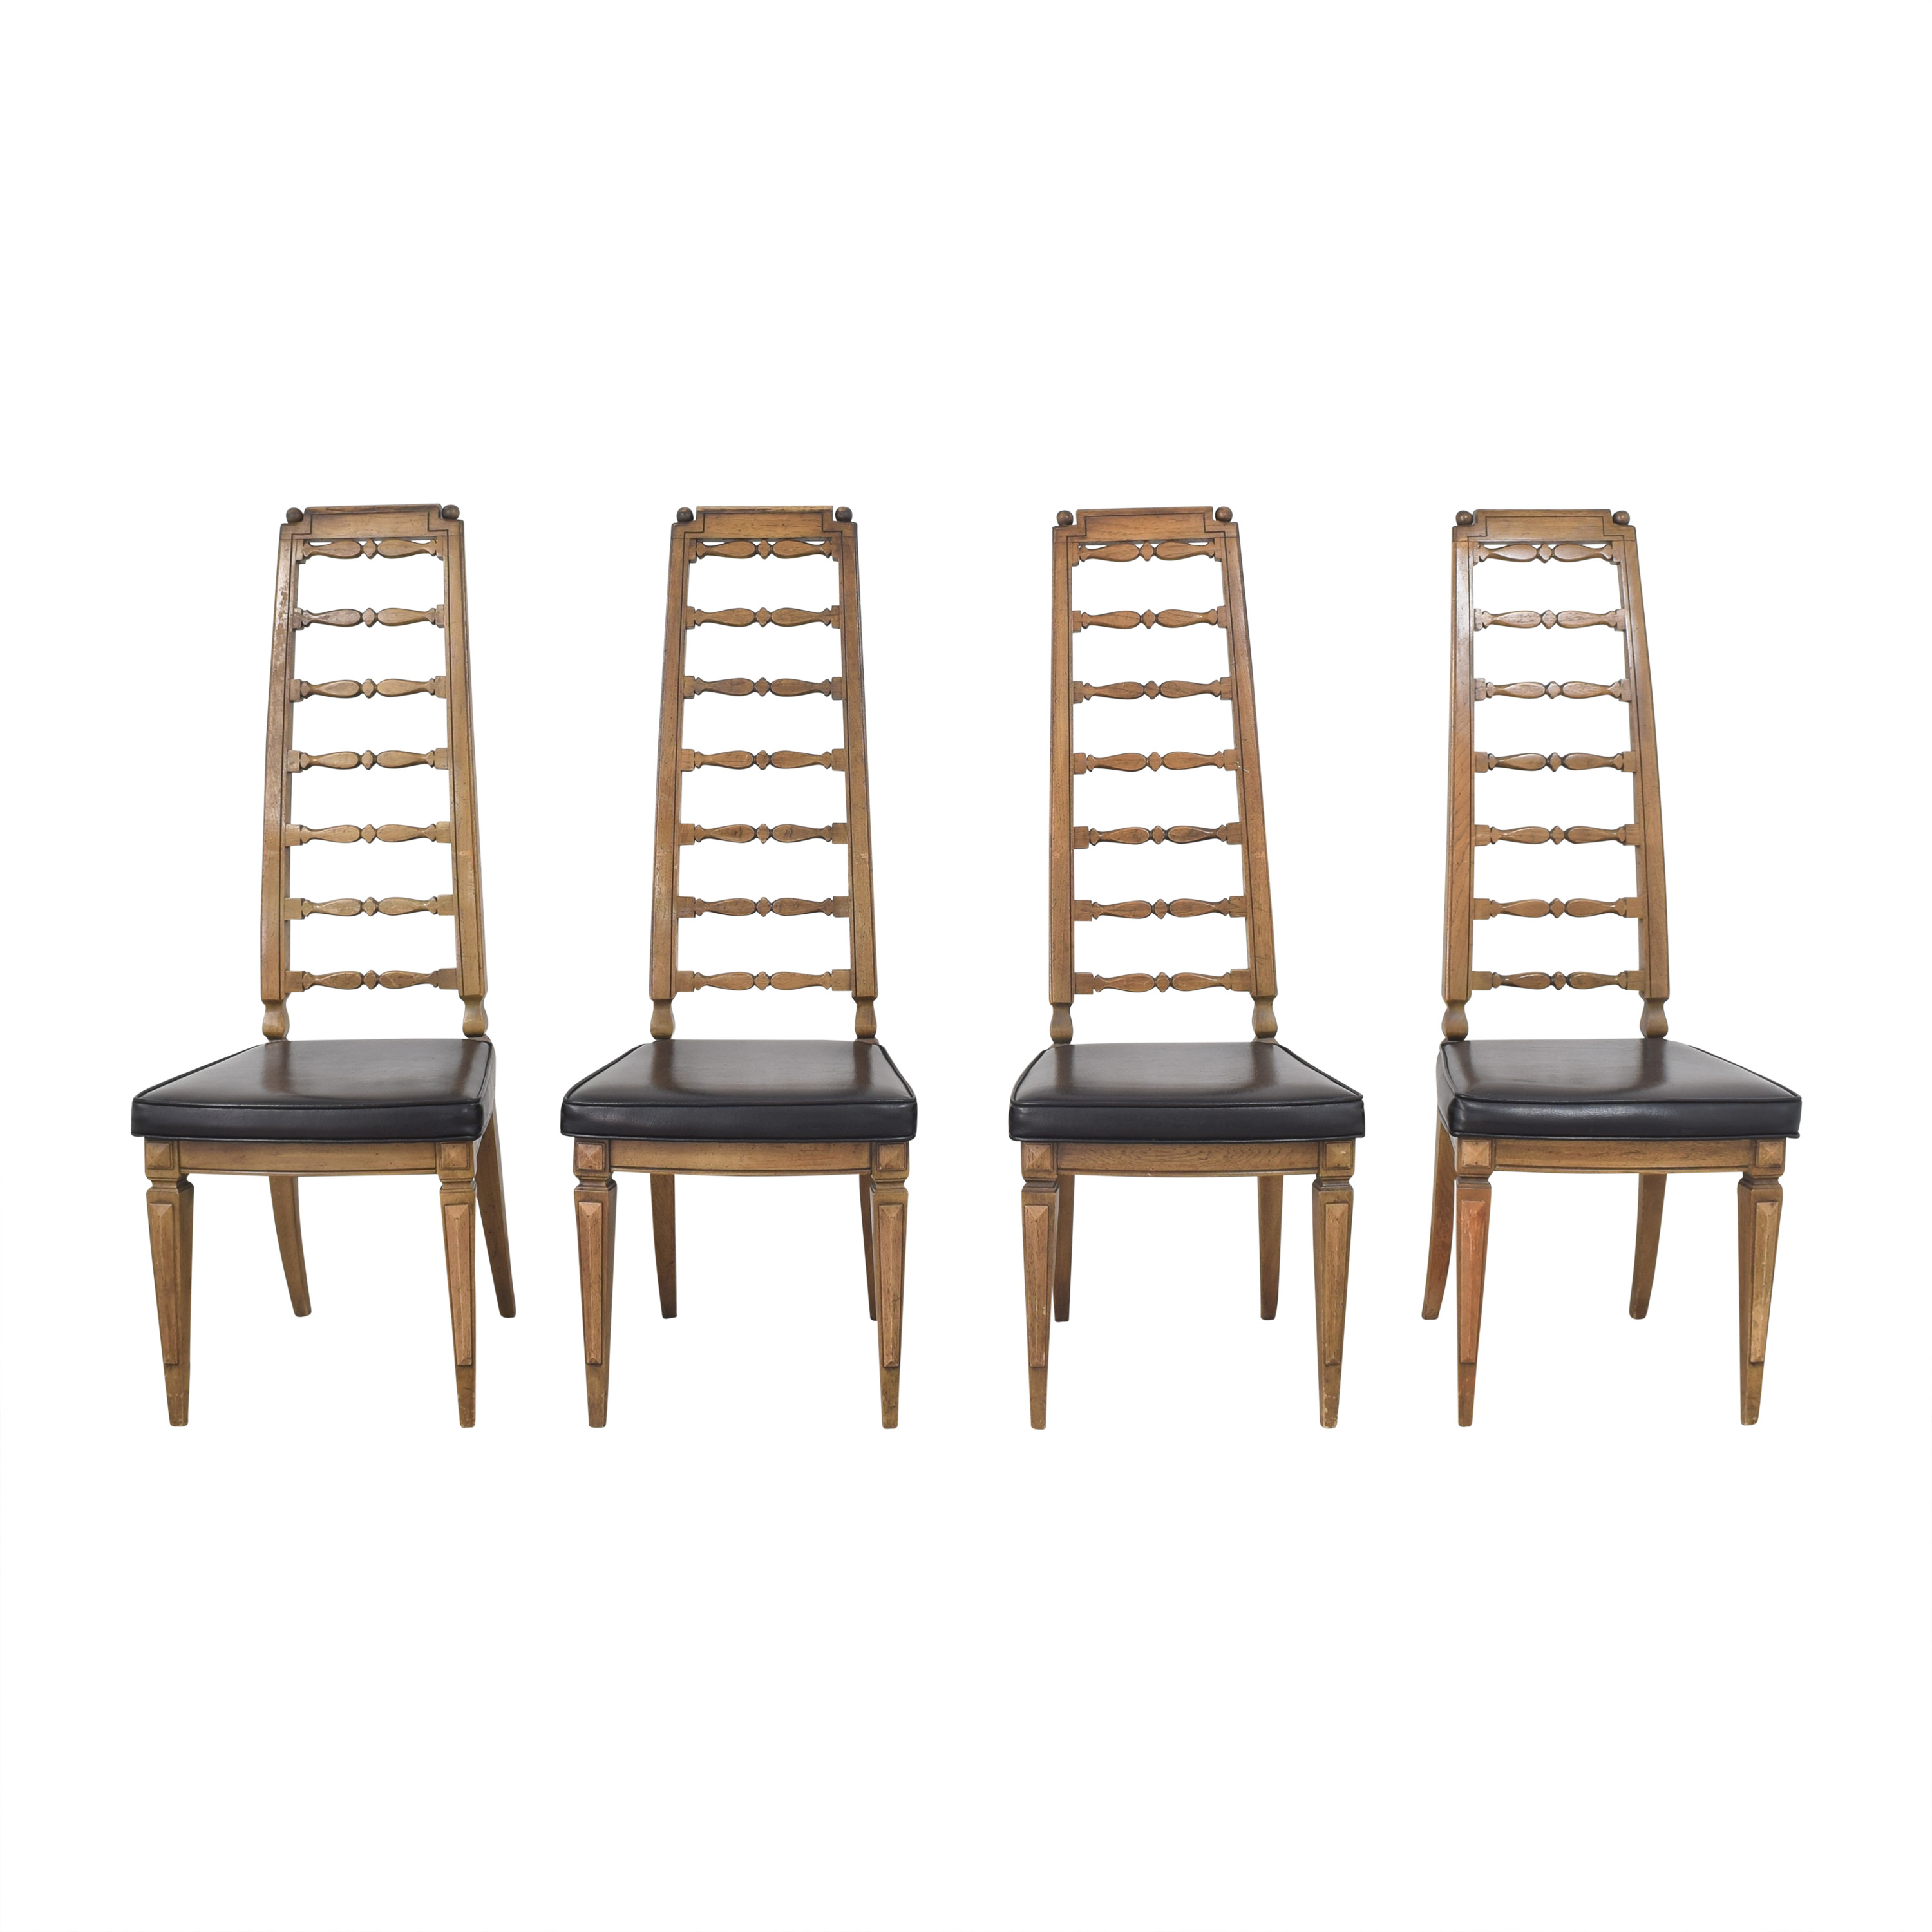 Thomasville Thomasville Tall Ladder Back Dining Chairs ma